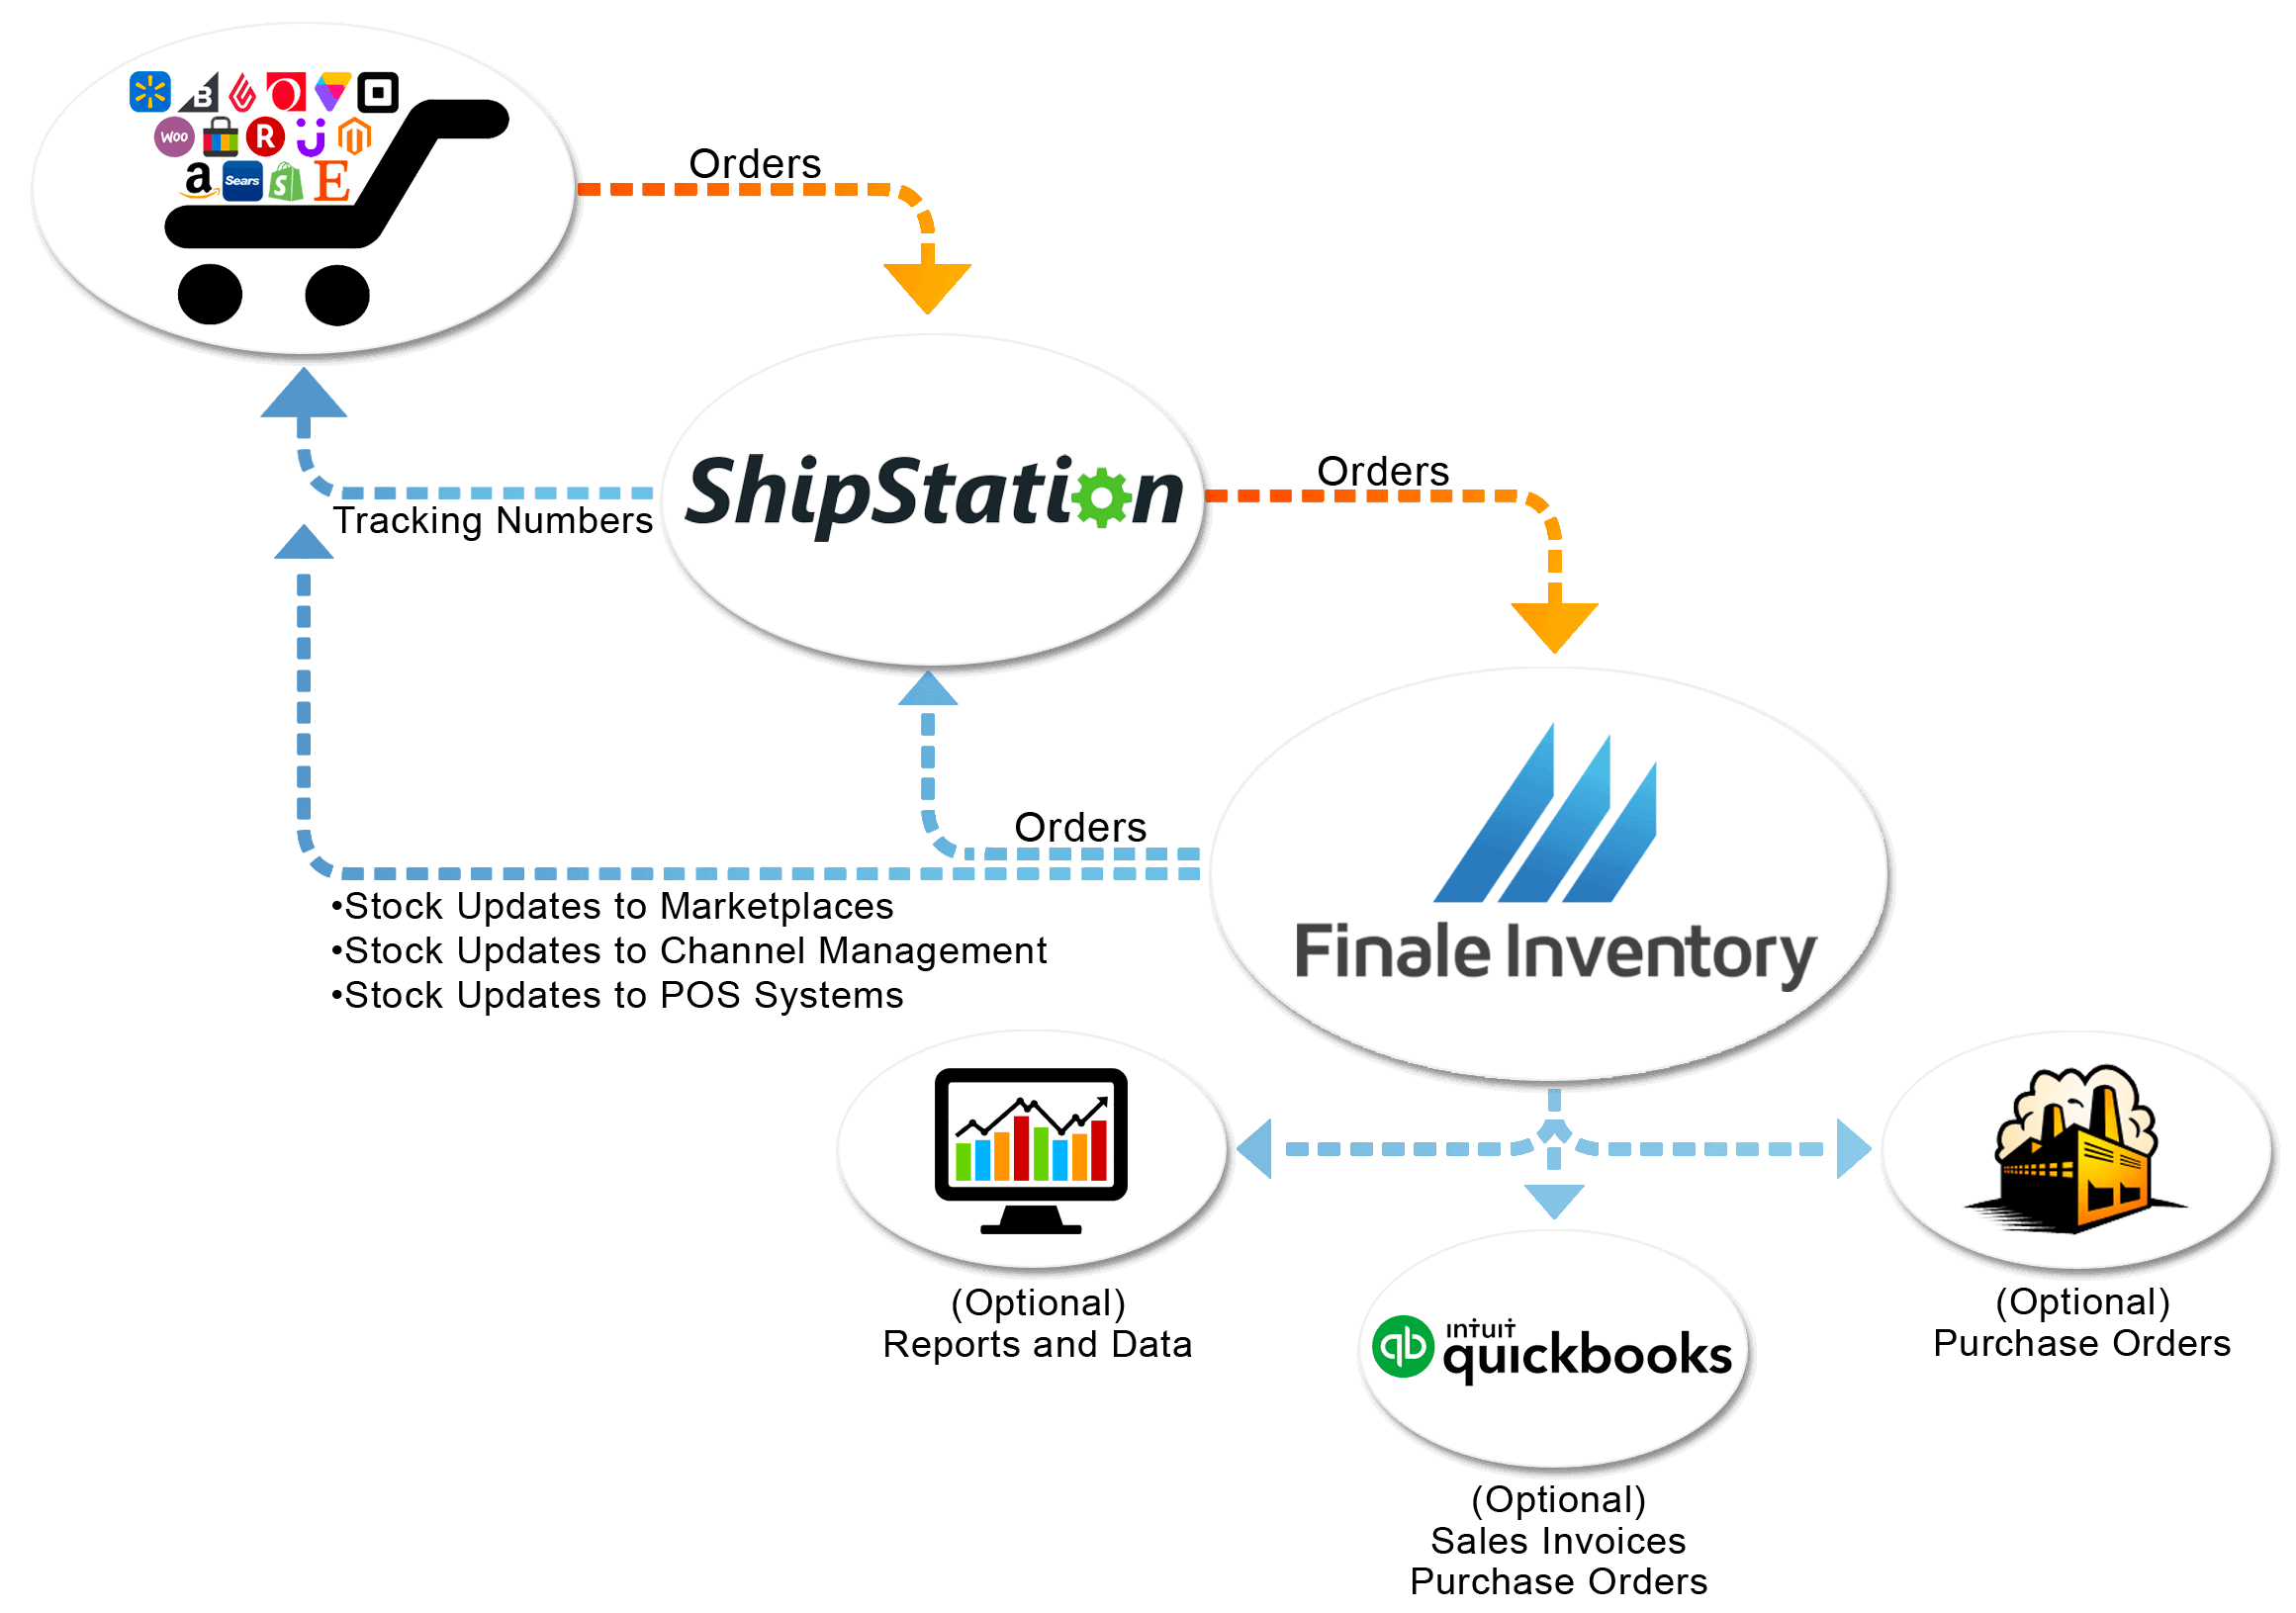 ShipStation-Shipping-Flow-Chart-2 (1) (1)